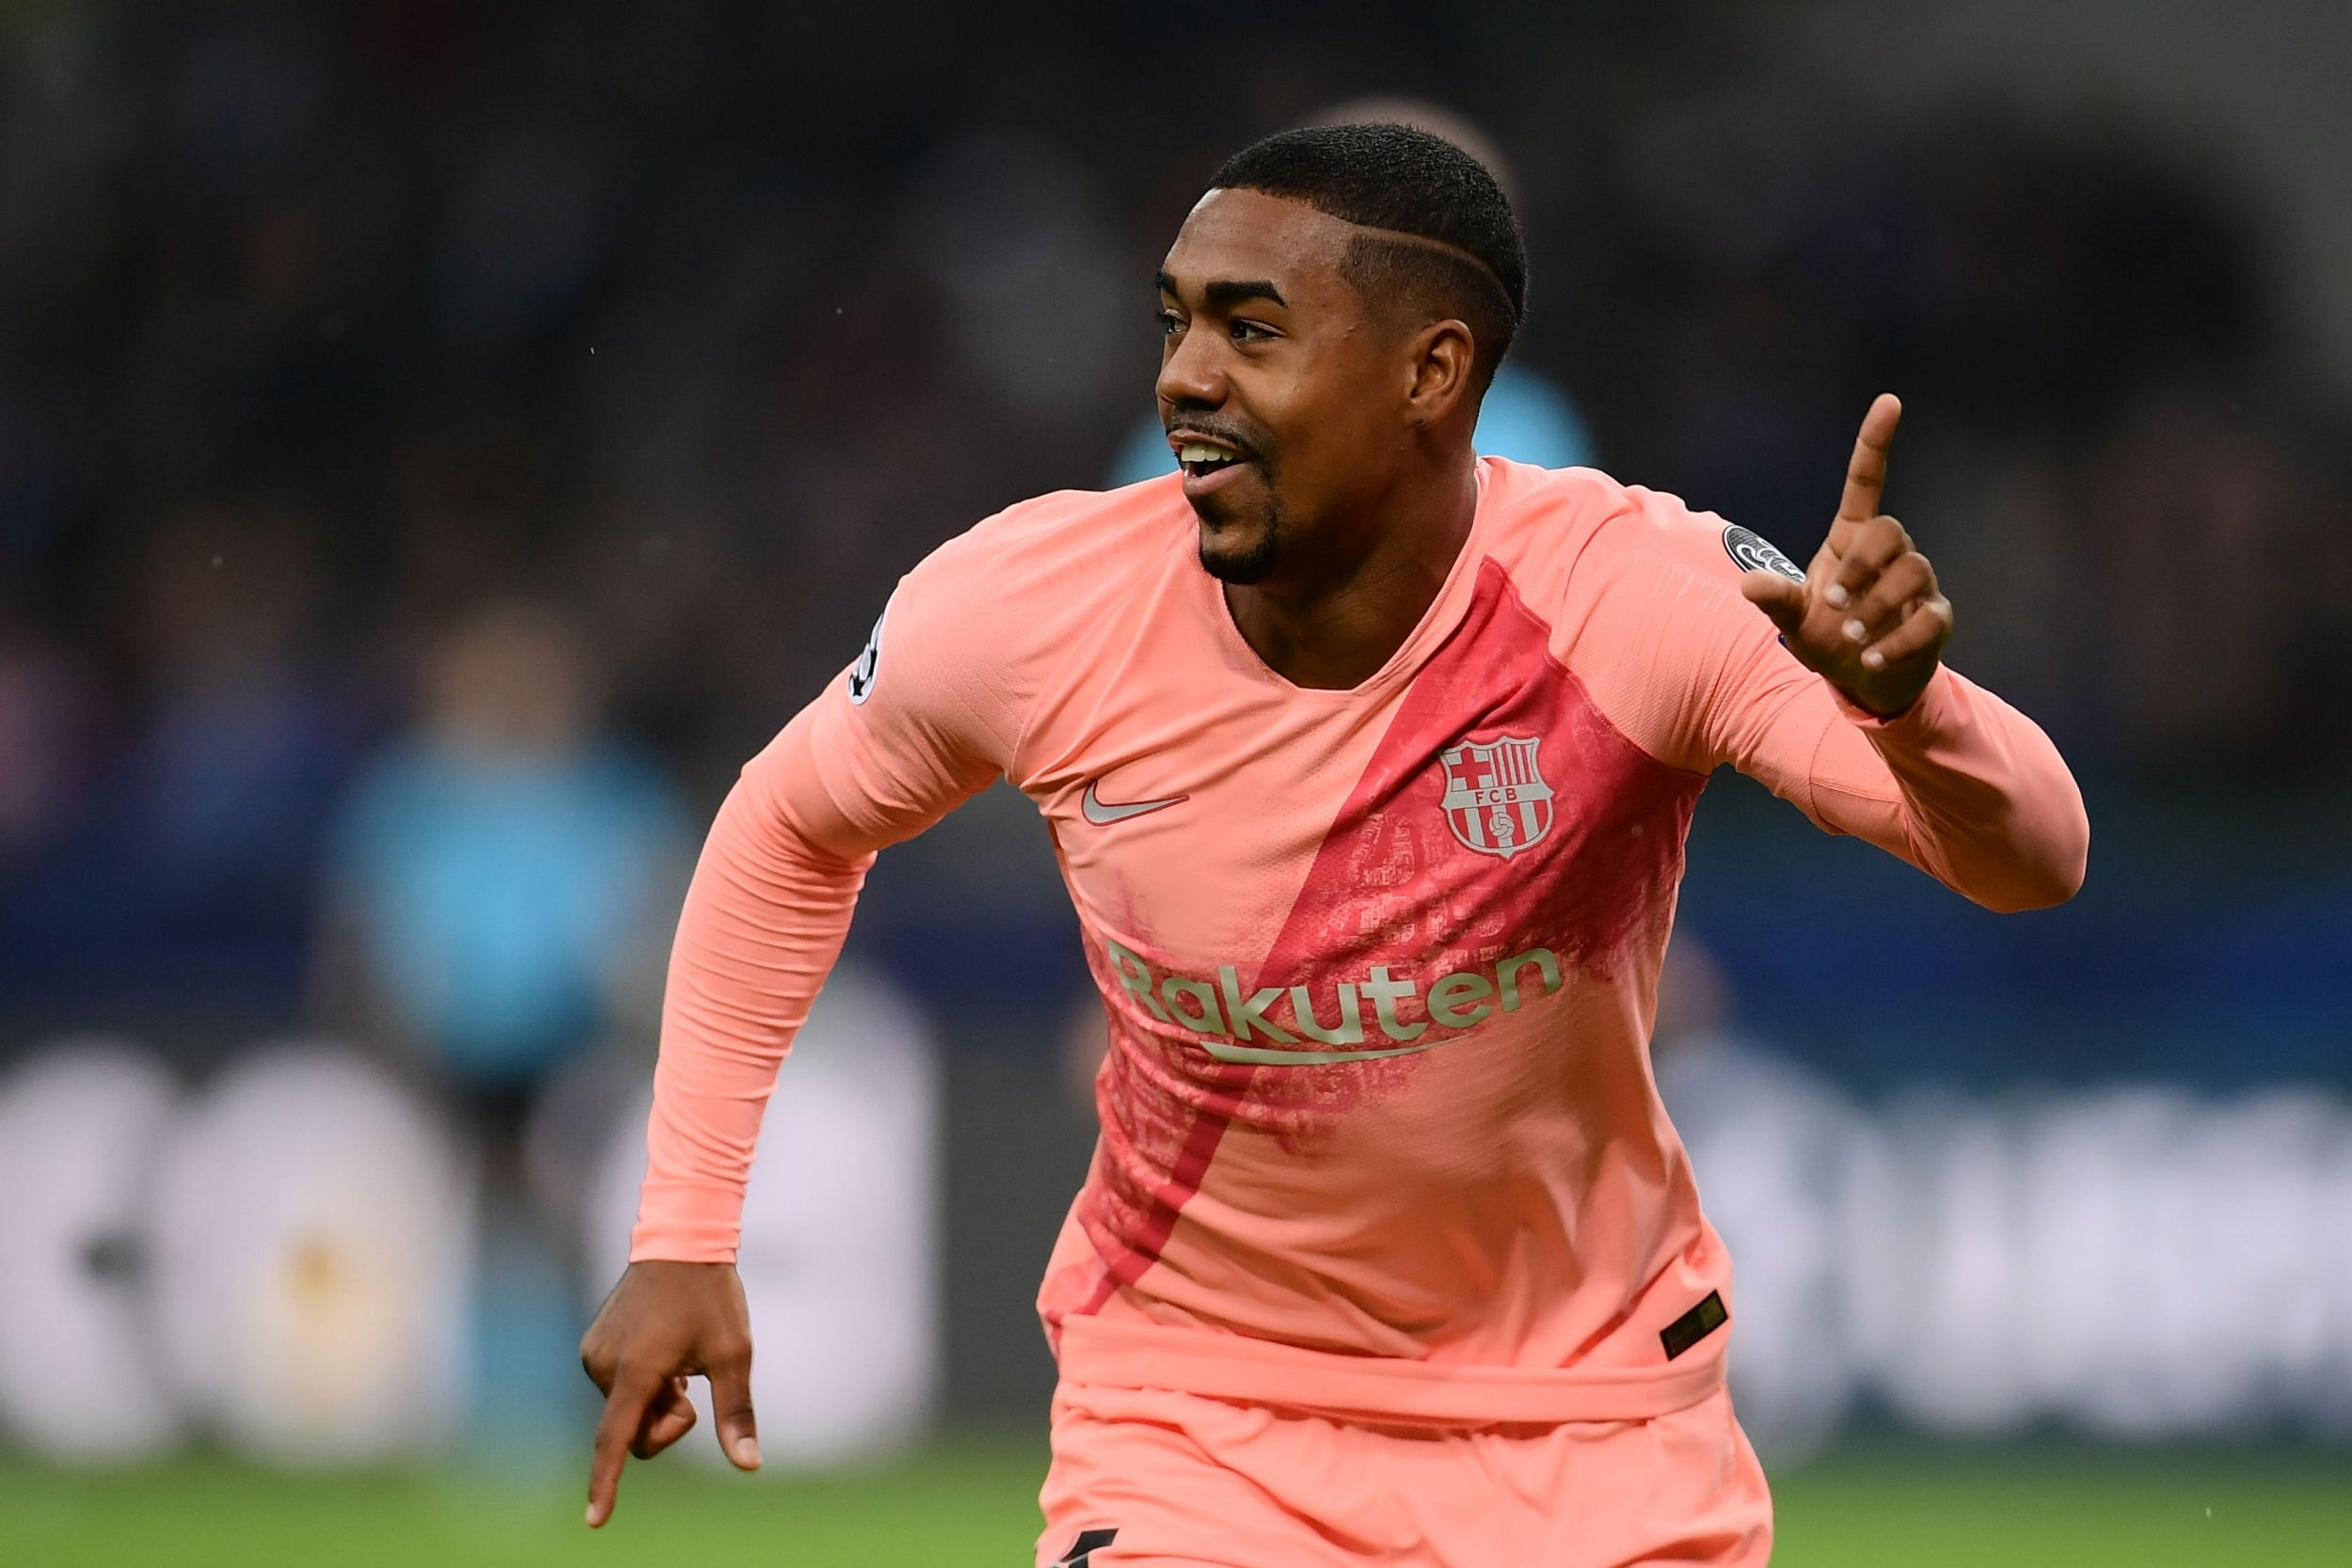 Barcelona forward Malcom ruled out of Champions League clash with Tottenham due to sprained ankle